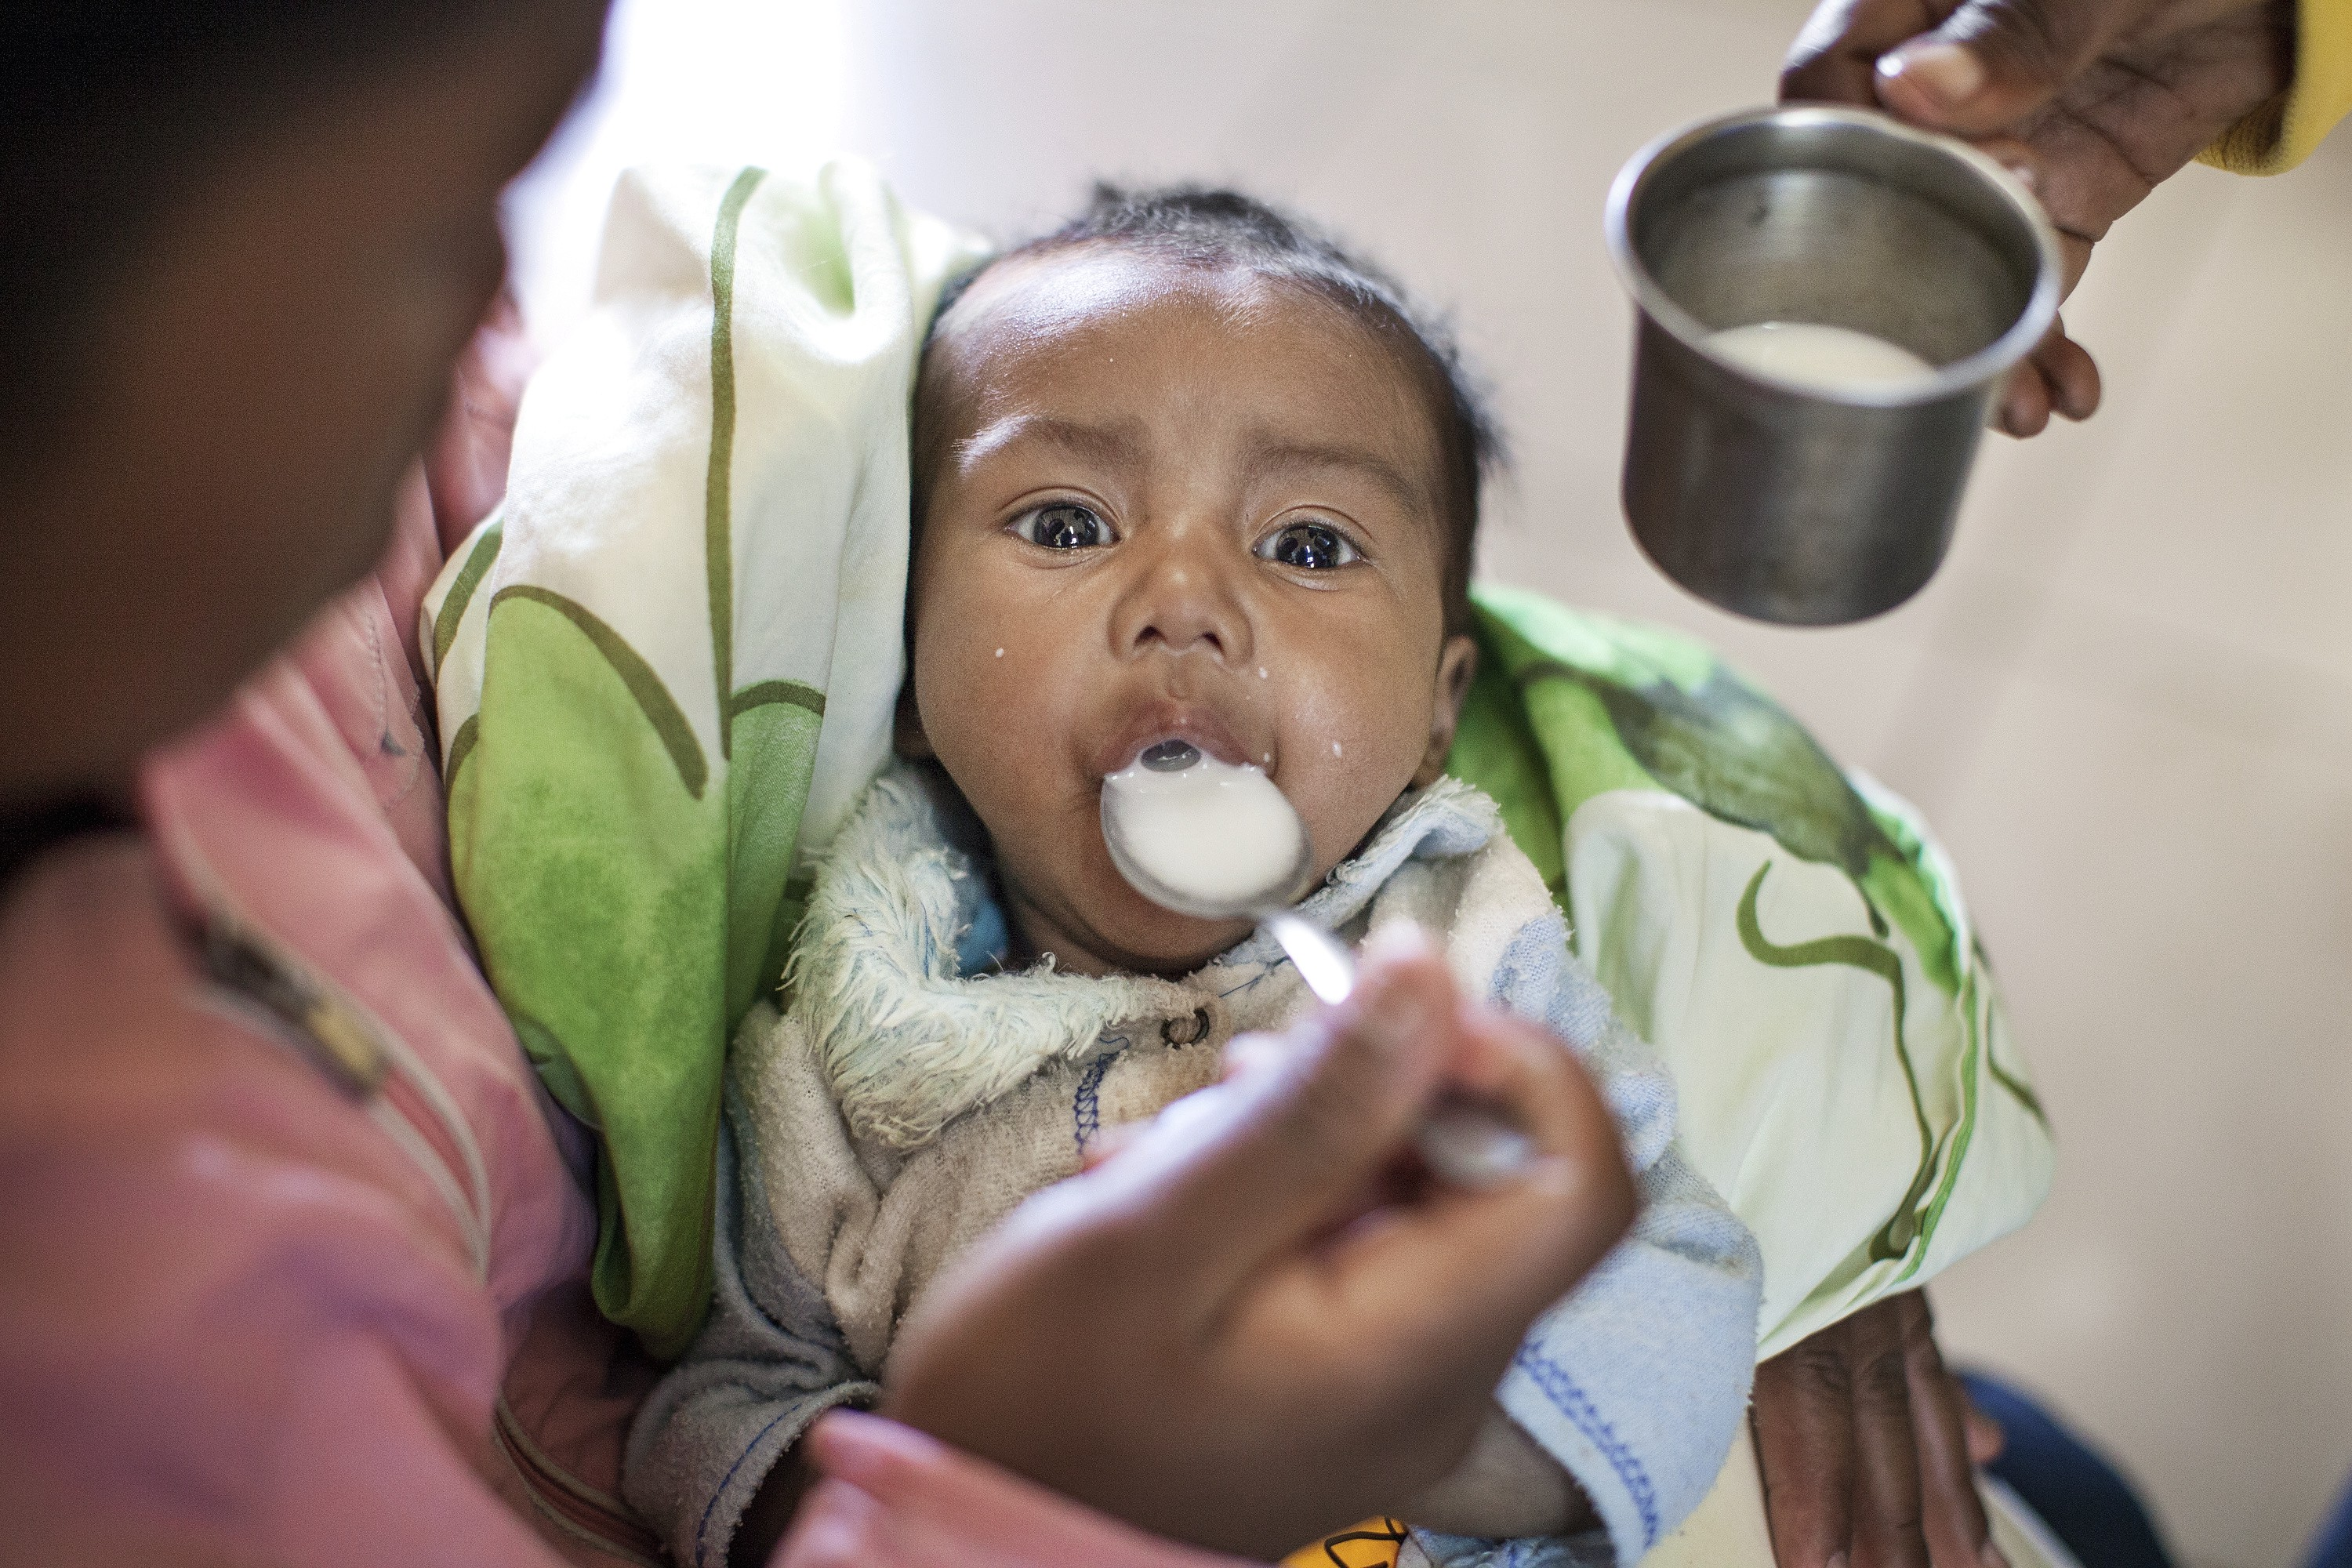 A mother in Madagascar feeds her child formula with a spoon.